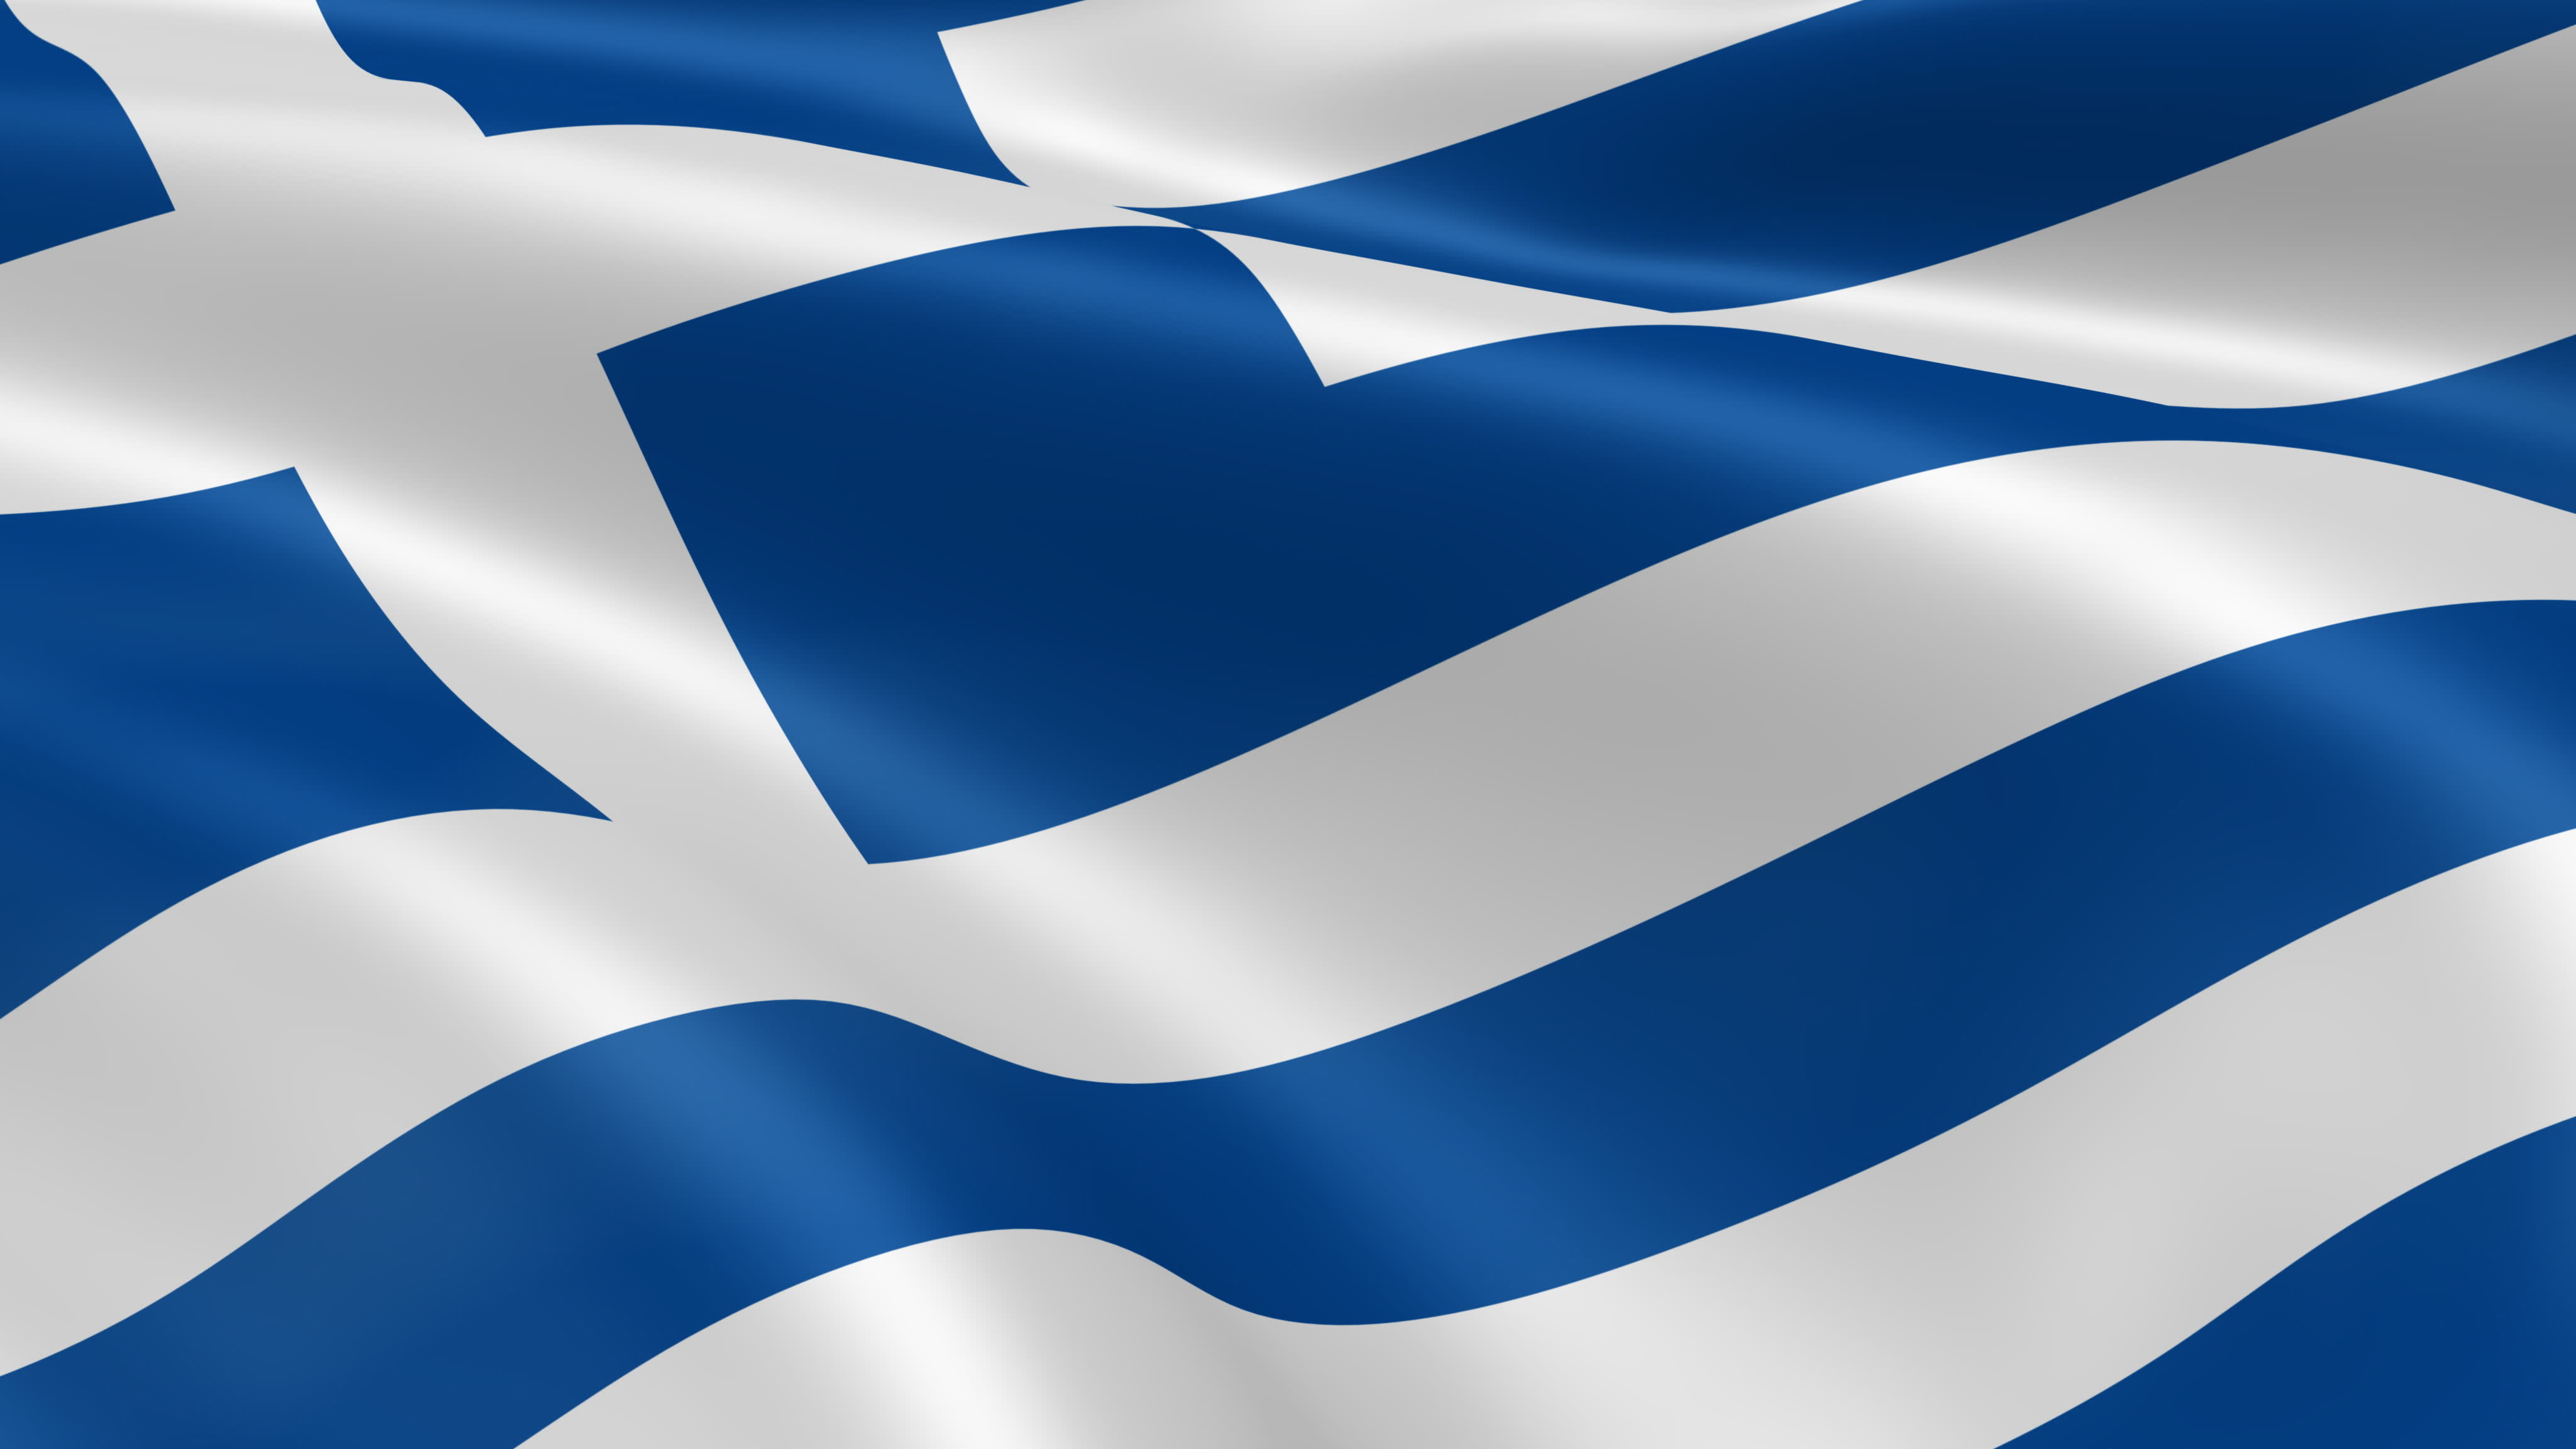 Greek Flag Wallpaper 4096x2304